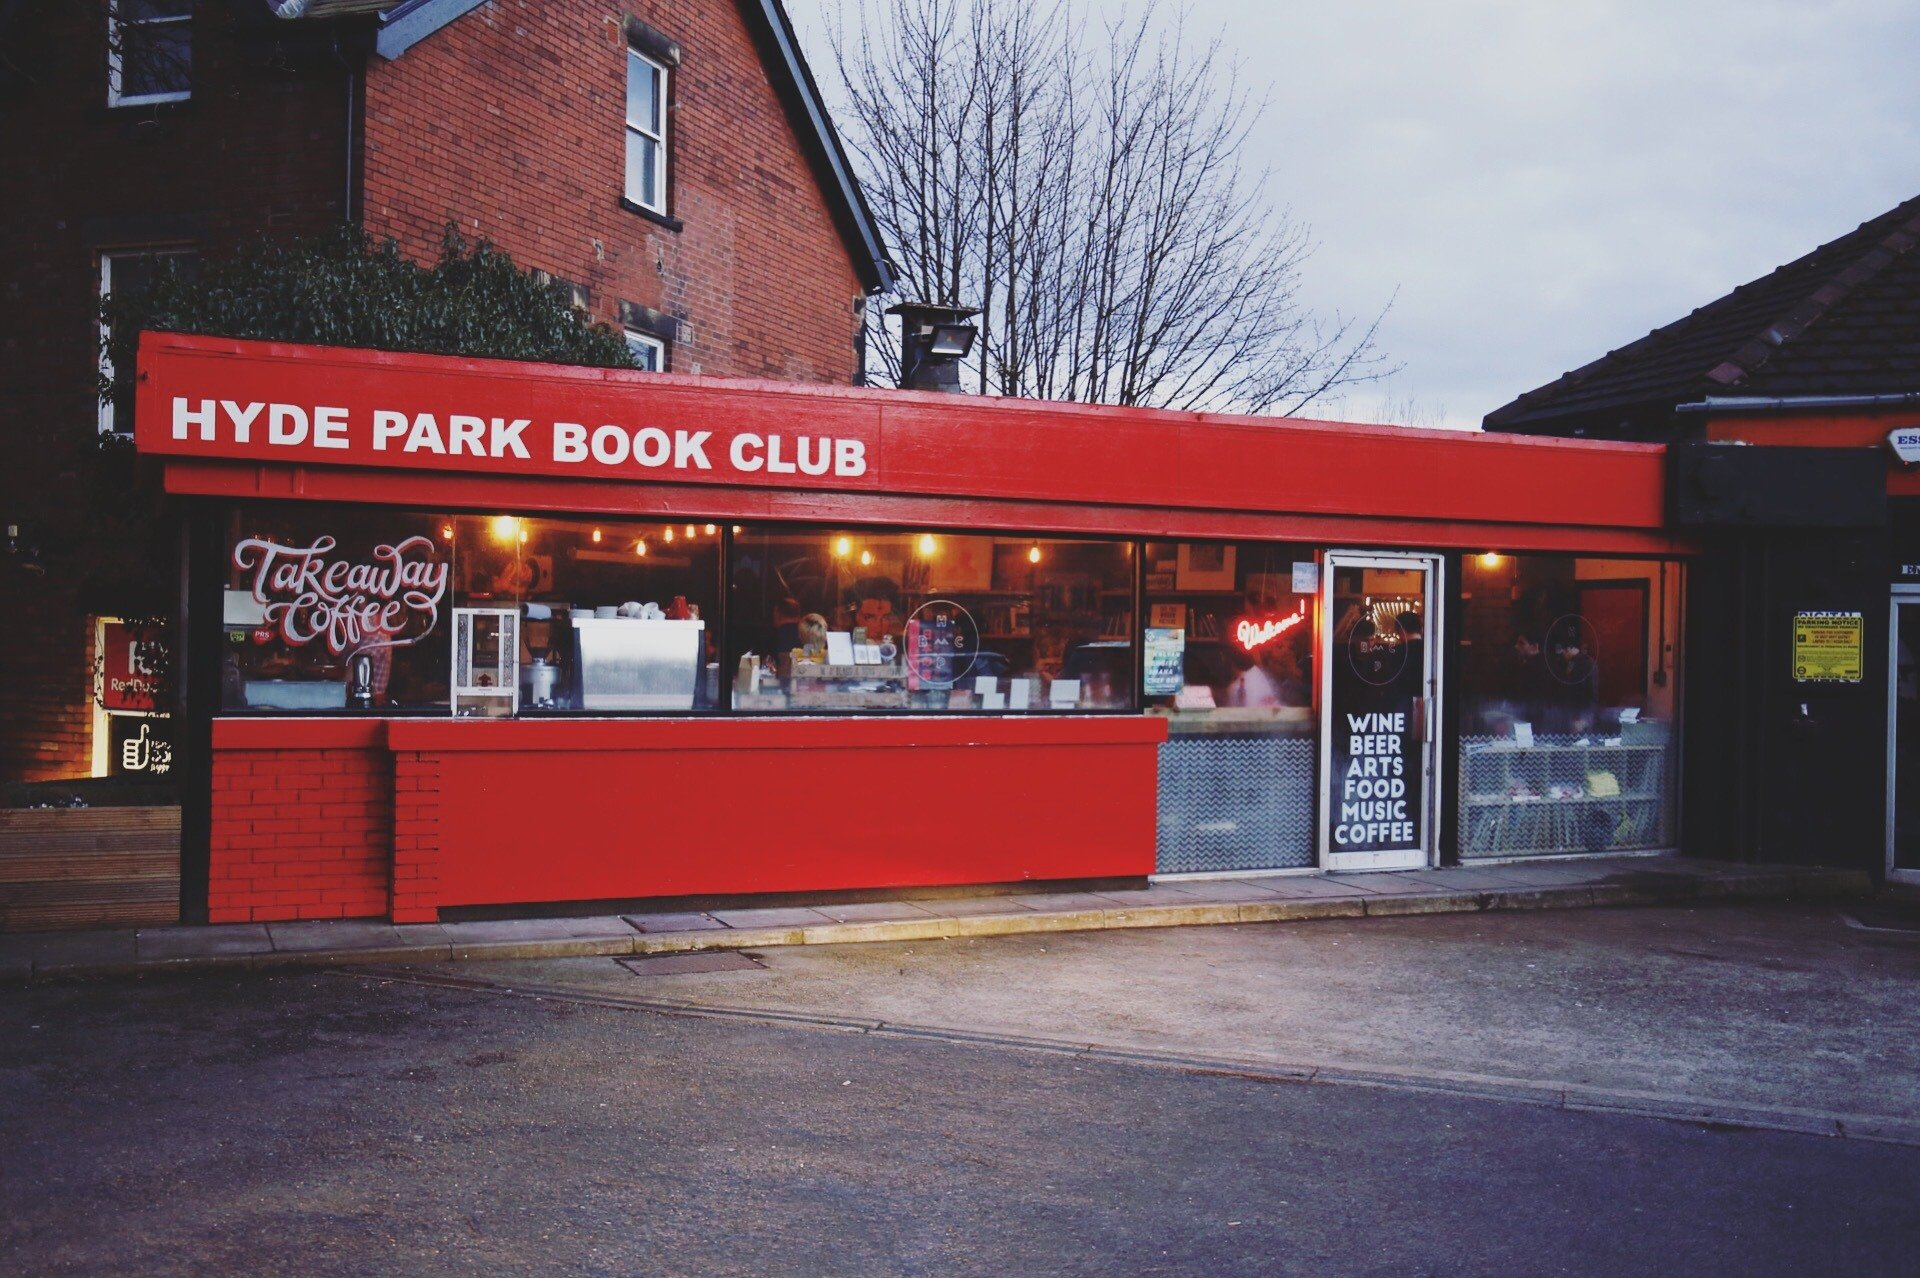 """Image description: A red-fronted cafe with a long front window. Neon light emanates from the inside, and the windows are full of coffee machines, baked goods and signs. A sign on the top left reads """"Hyde Park Book Club"""", the glass door advertises """"Wine, Beer, Arts, Food, Music, Coffee"""""""